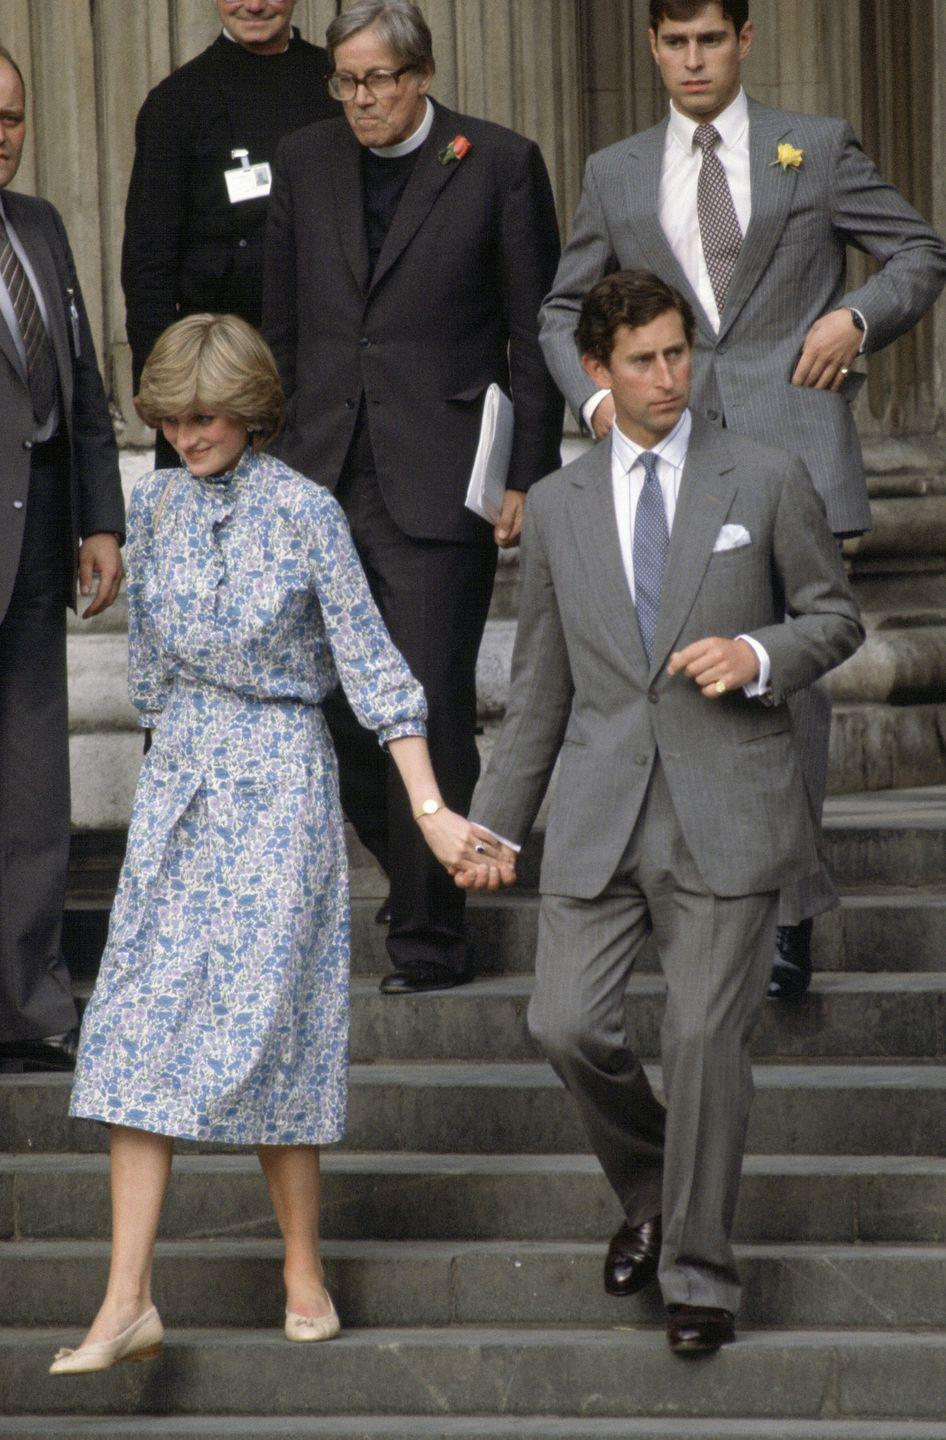 <p>The almost-bride-and-groom photographed leaving St. Paul's Cathedral after their wedding rehearsal, with Prince Andrew behind them on the steps.</p>